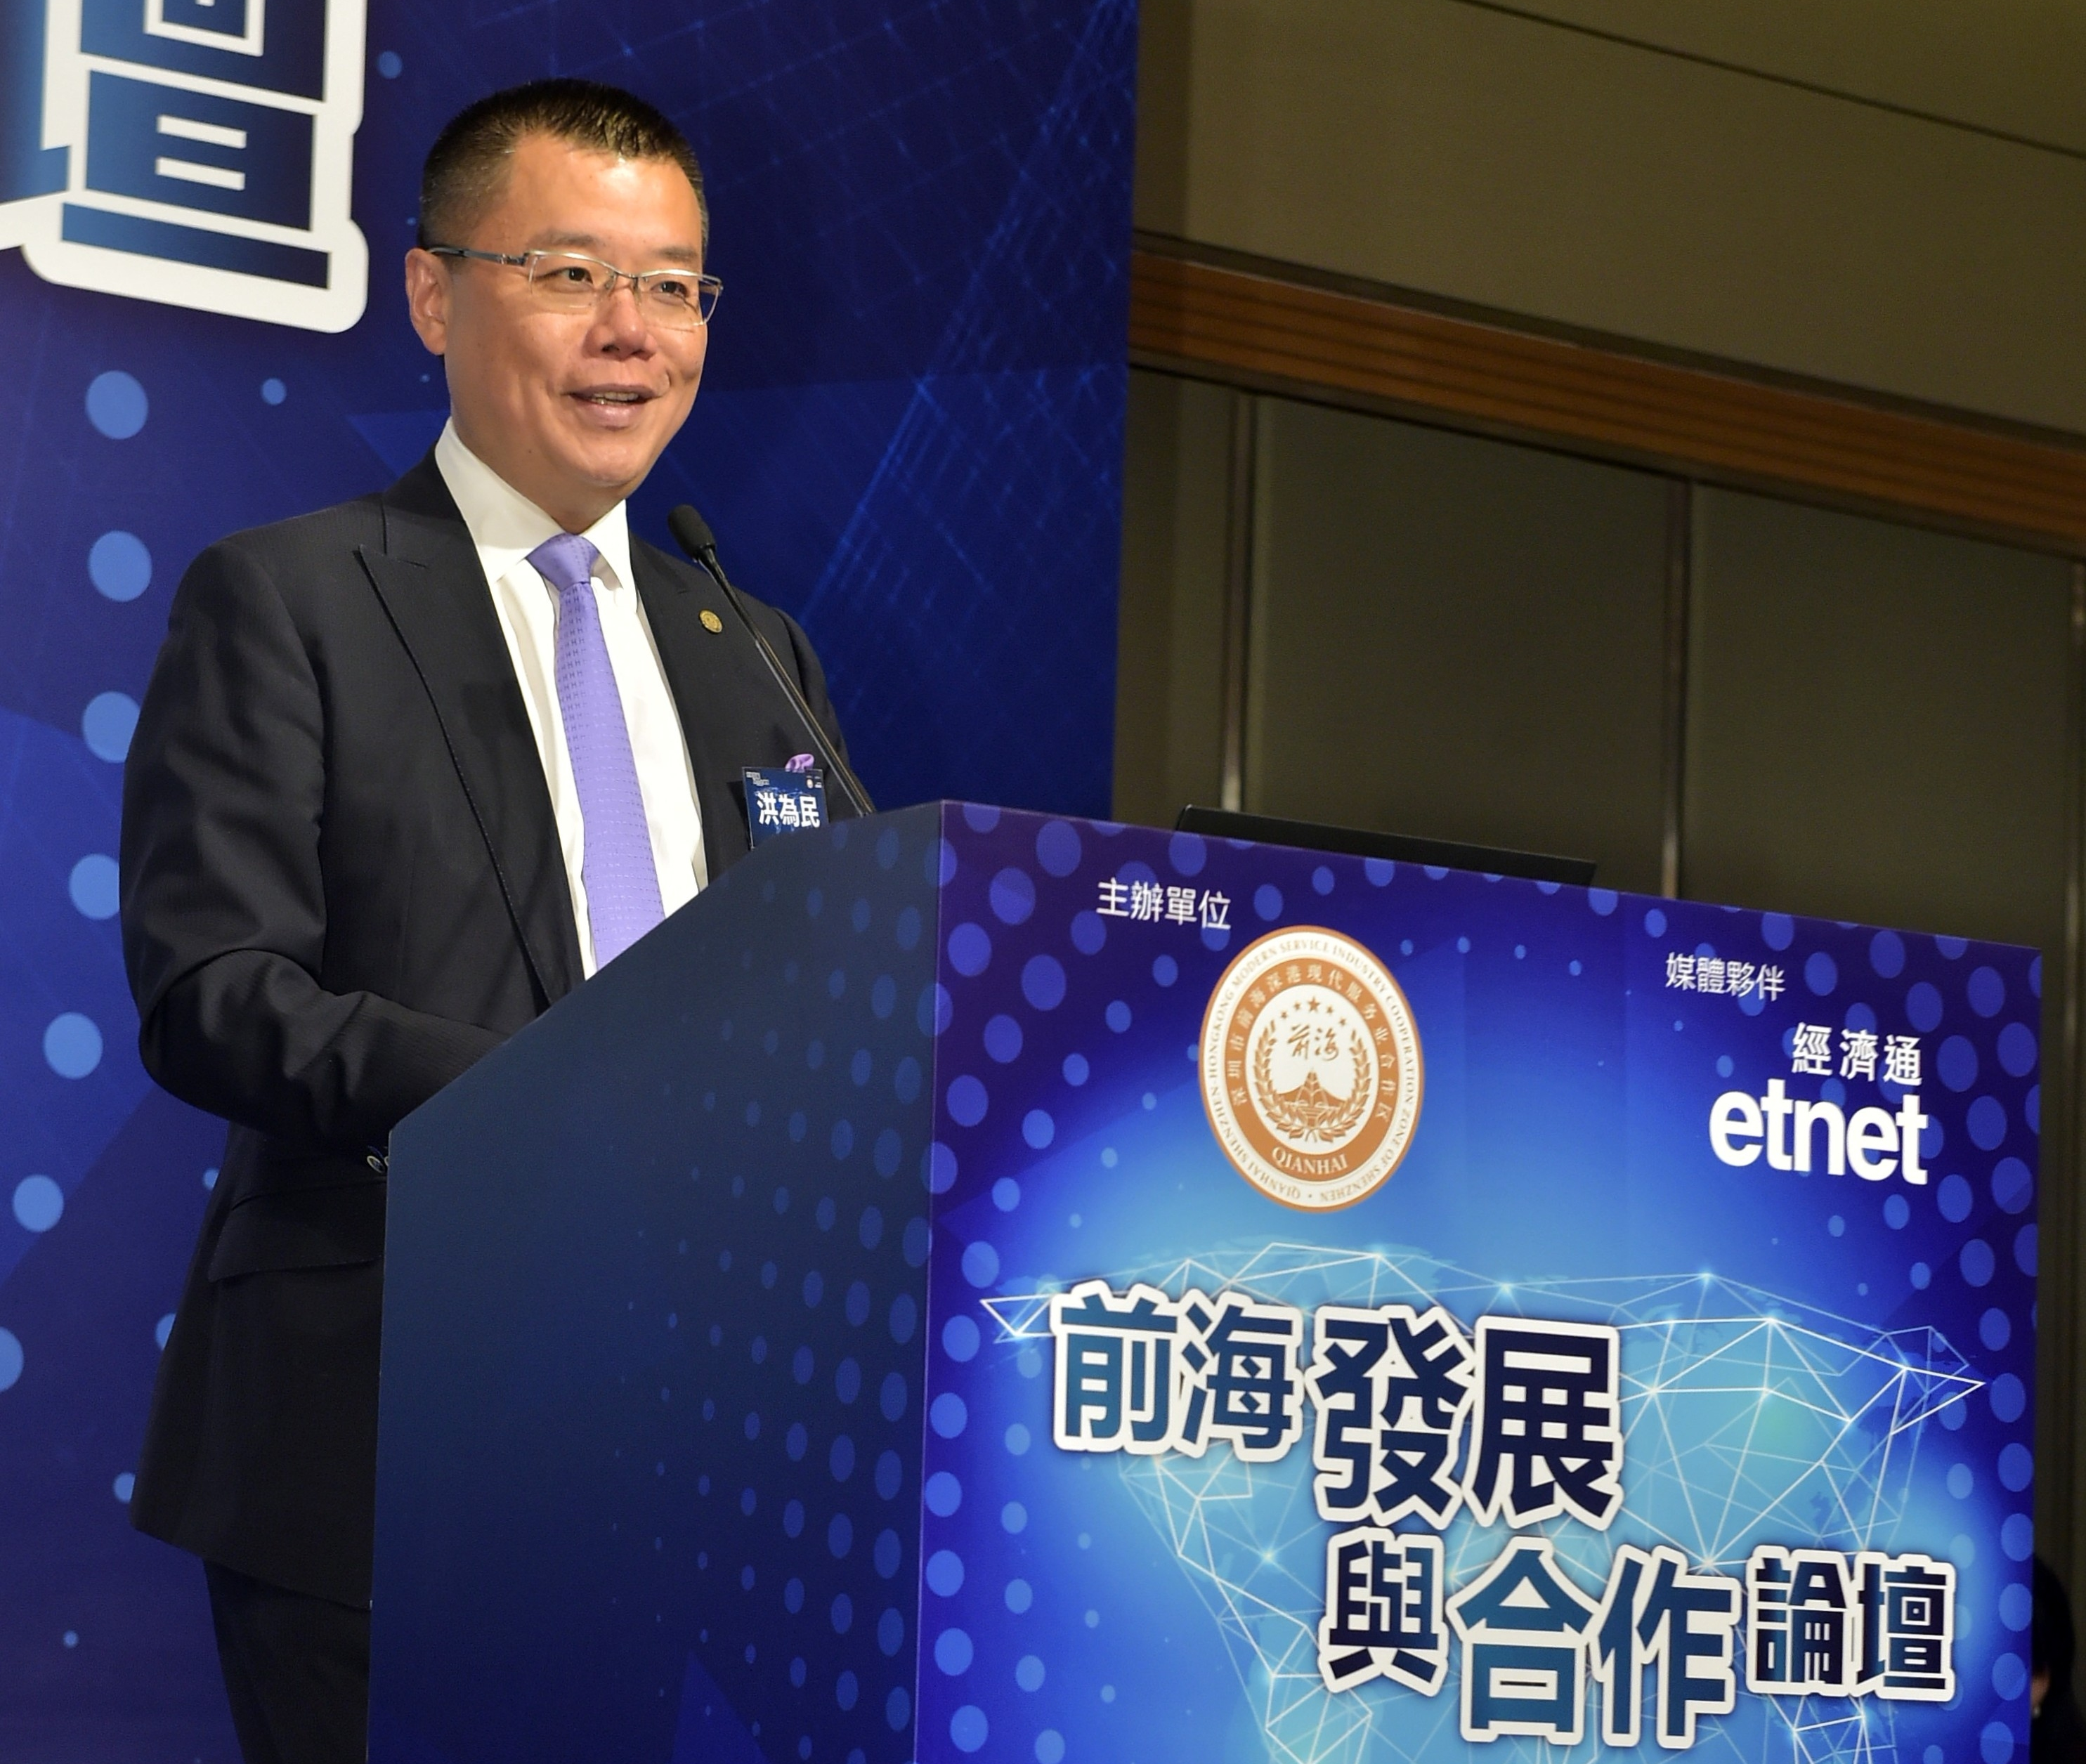 Experts see future fintech role for HK, Shenzhen